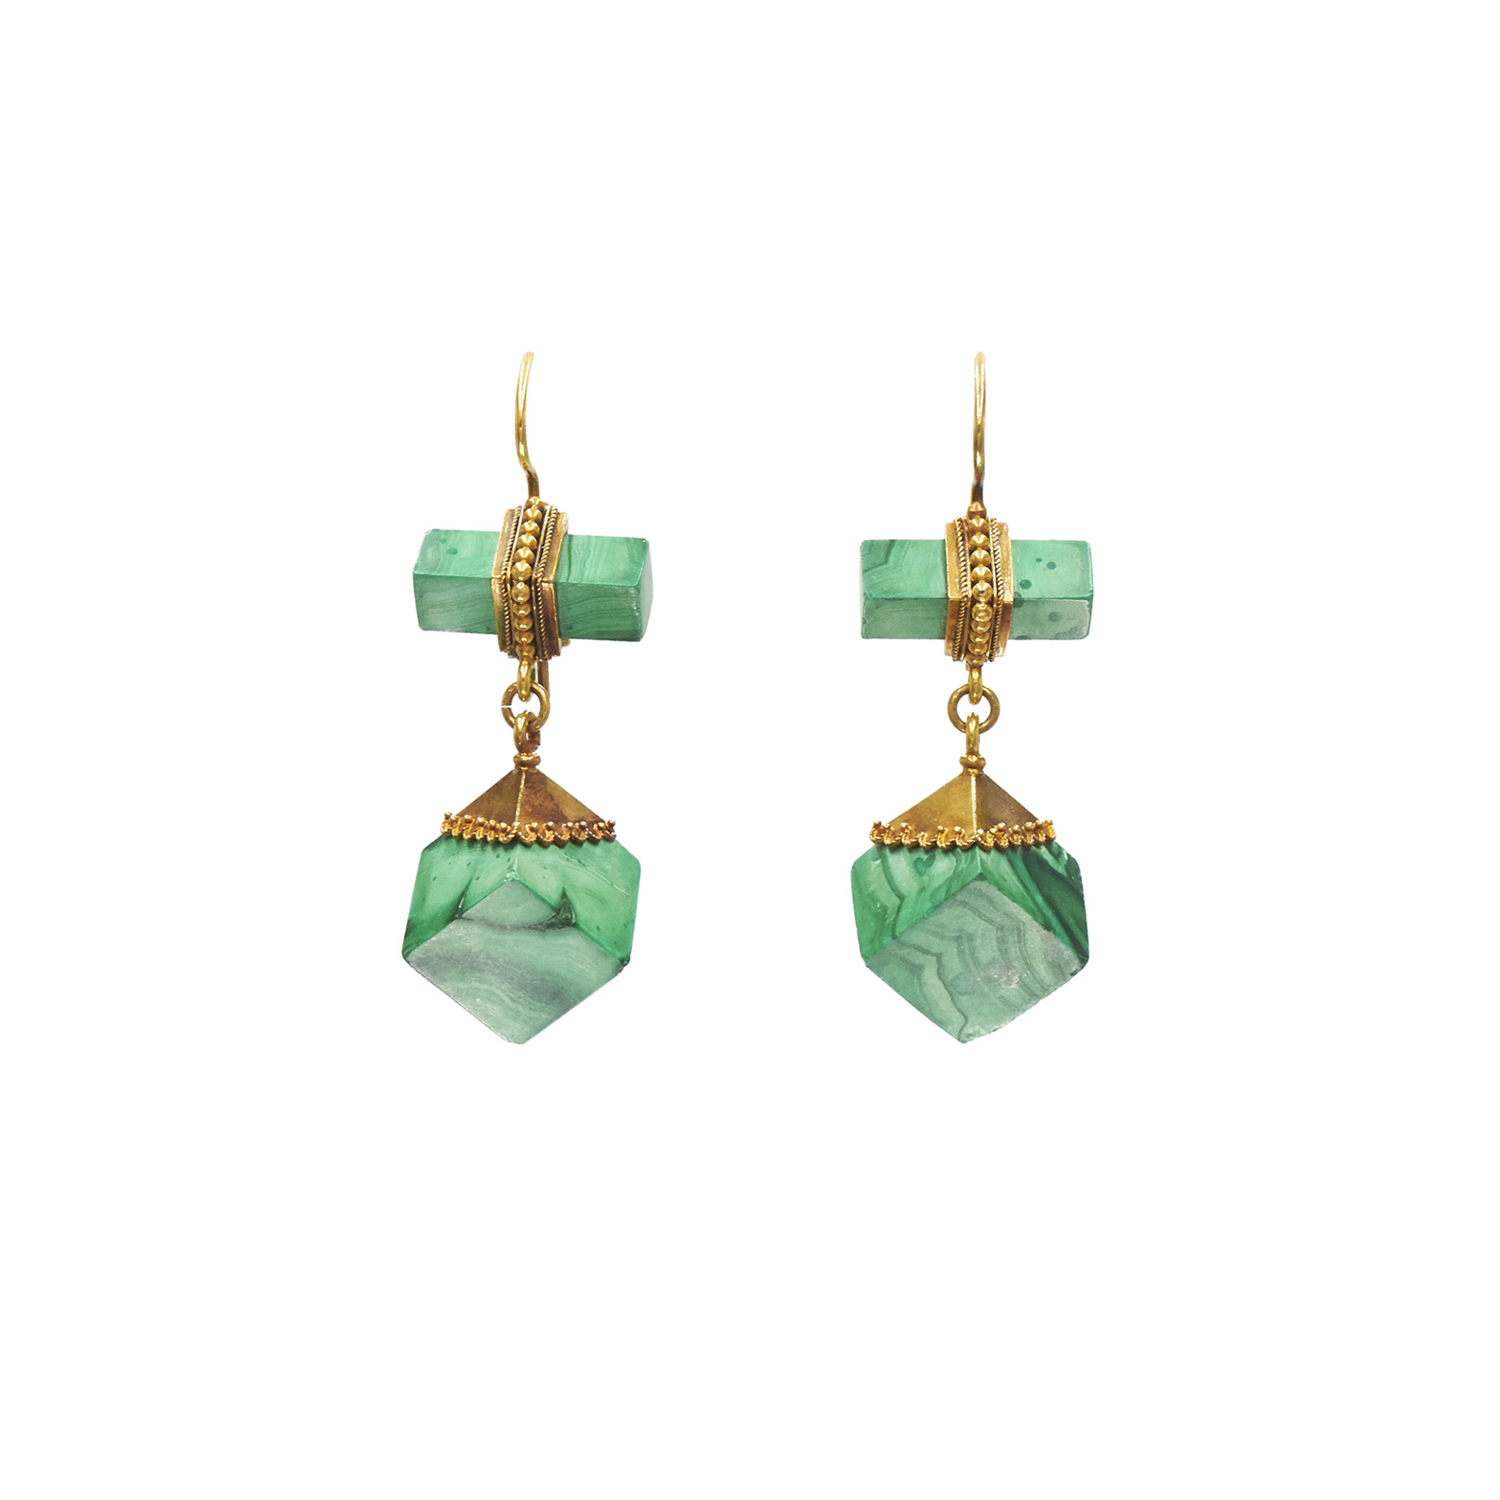 Antique 18K Yellow Gold Malachite Cube Pendant Earrings Style E-41395-FL-0-0